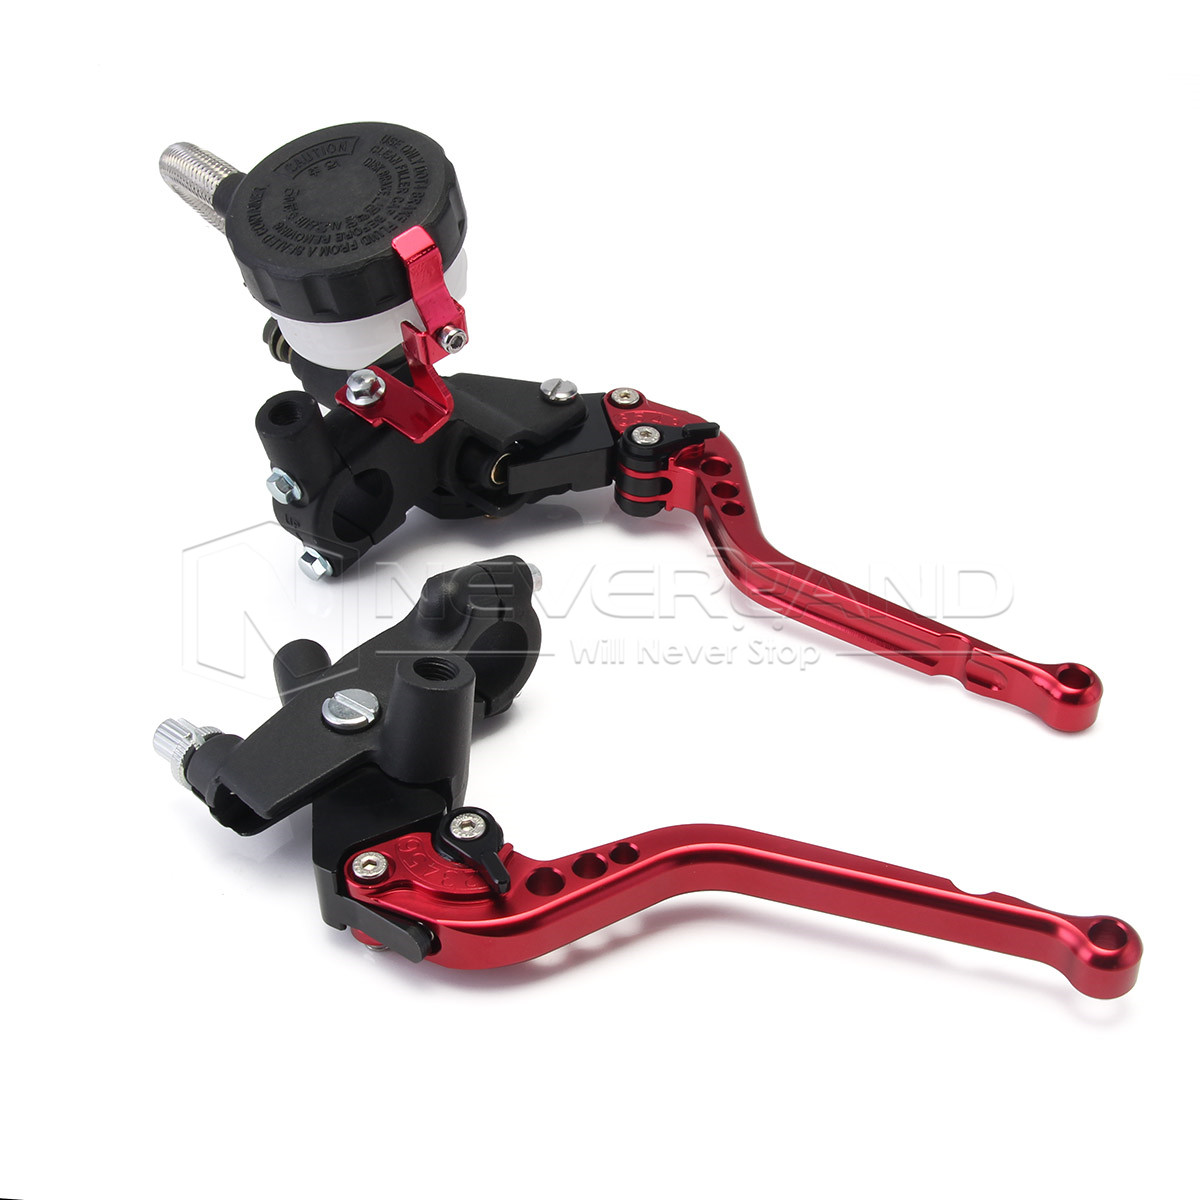 New Red Handlebars Cable Motorbike Brakes 7/8'' Clutch Brake Levers Master Cylinder Reservoir For Honda D20 new motorbike brake clutch levers